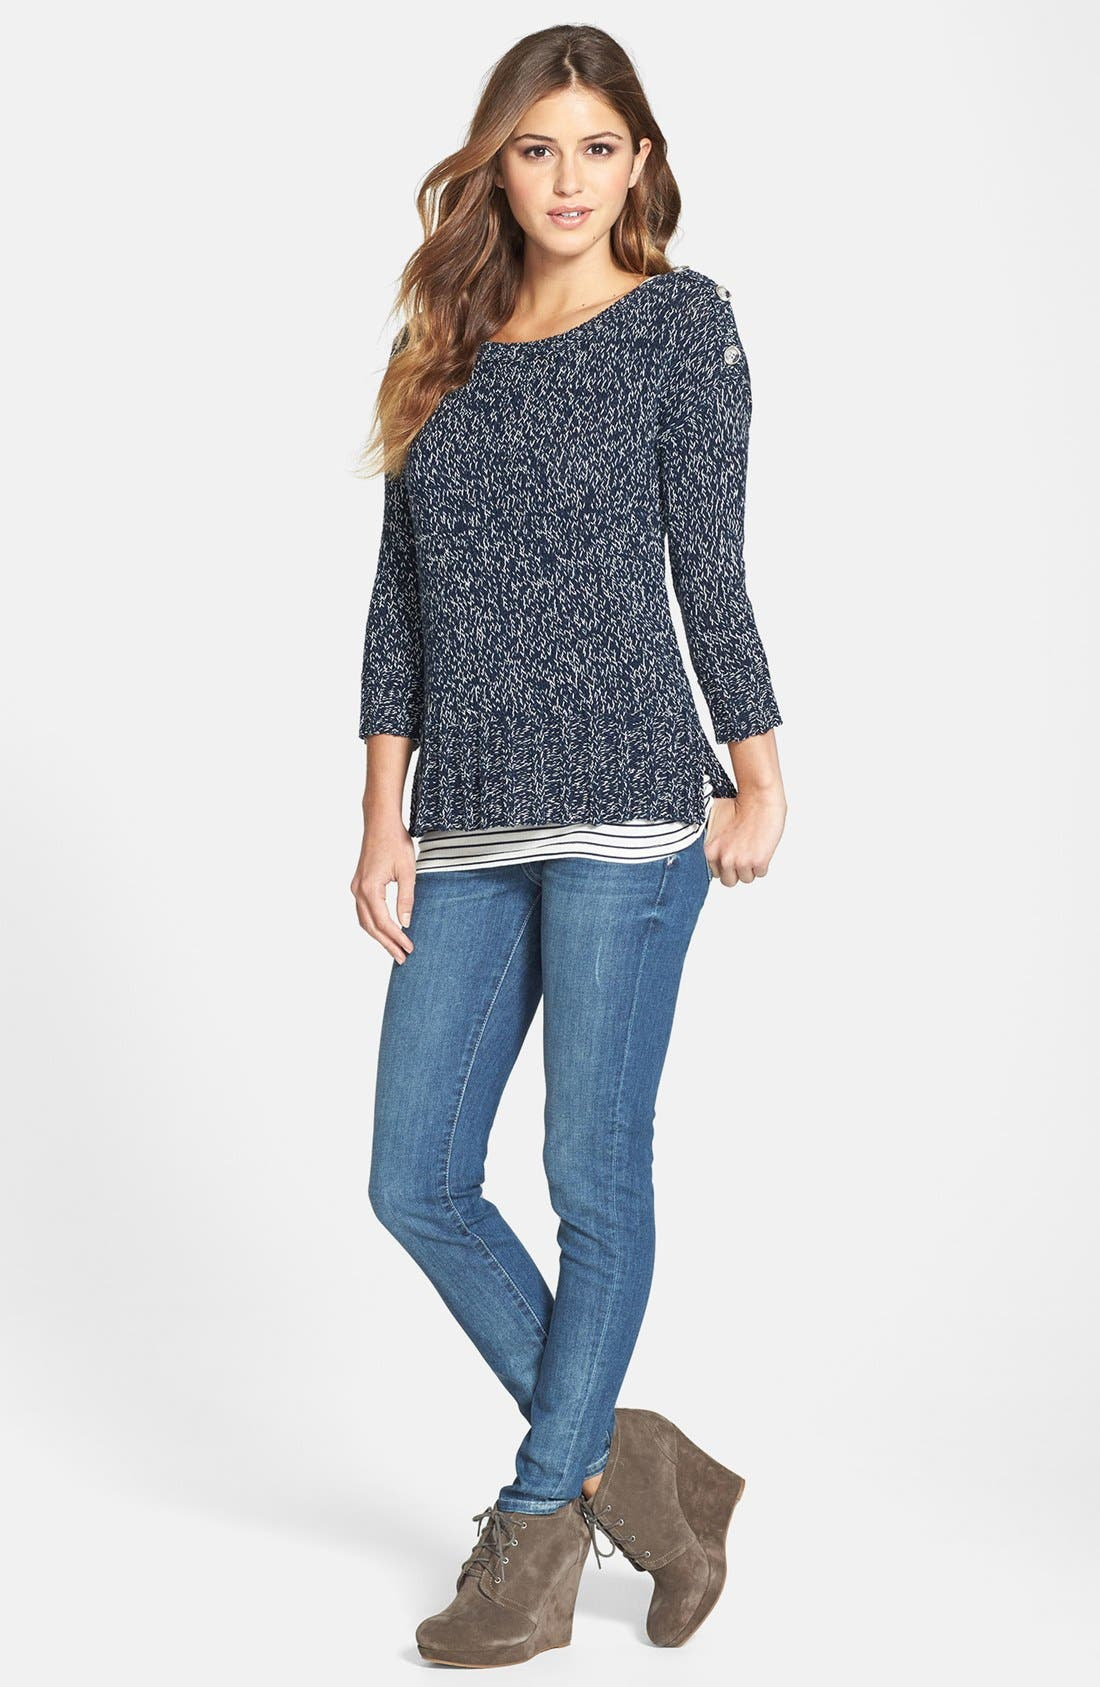 KUT FROM THE KLOTH, 'Mia' Skinny Jeans, Alternate thumbnail 2, color, 433